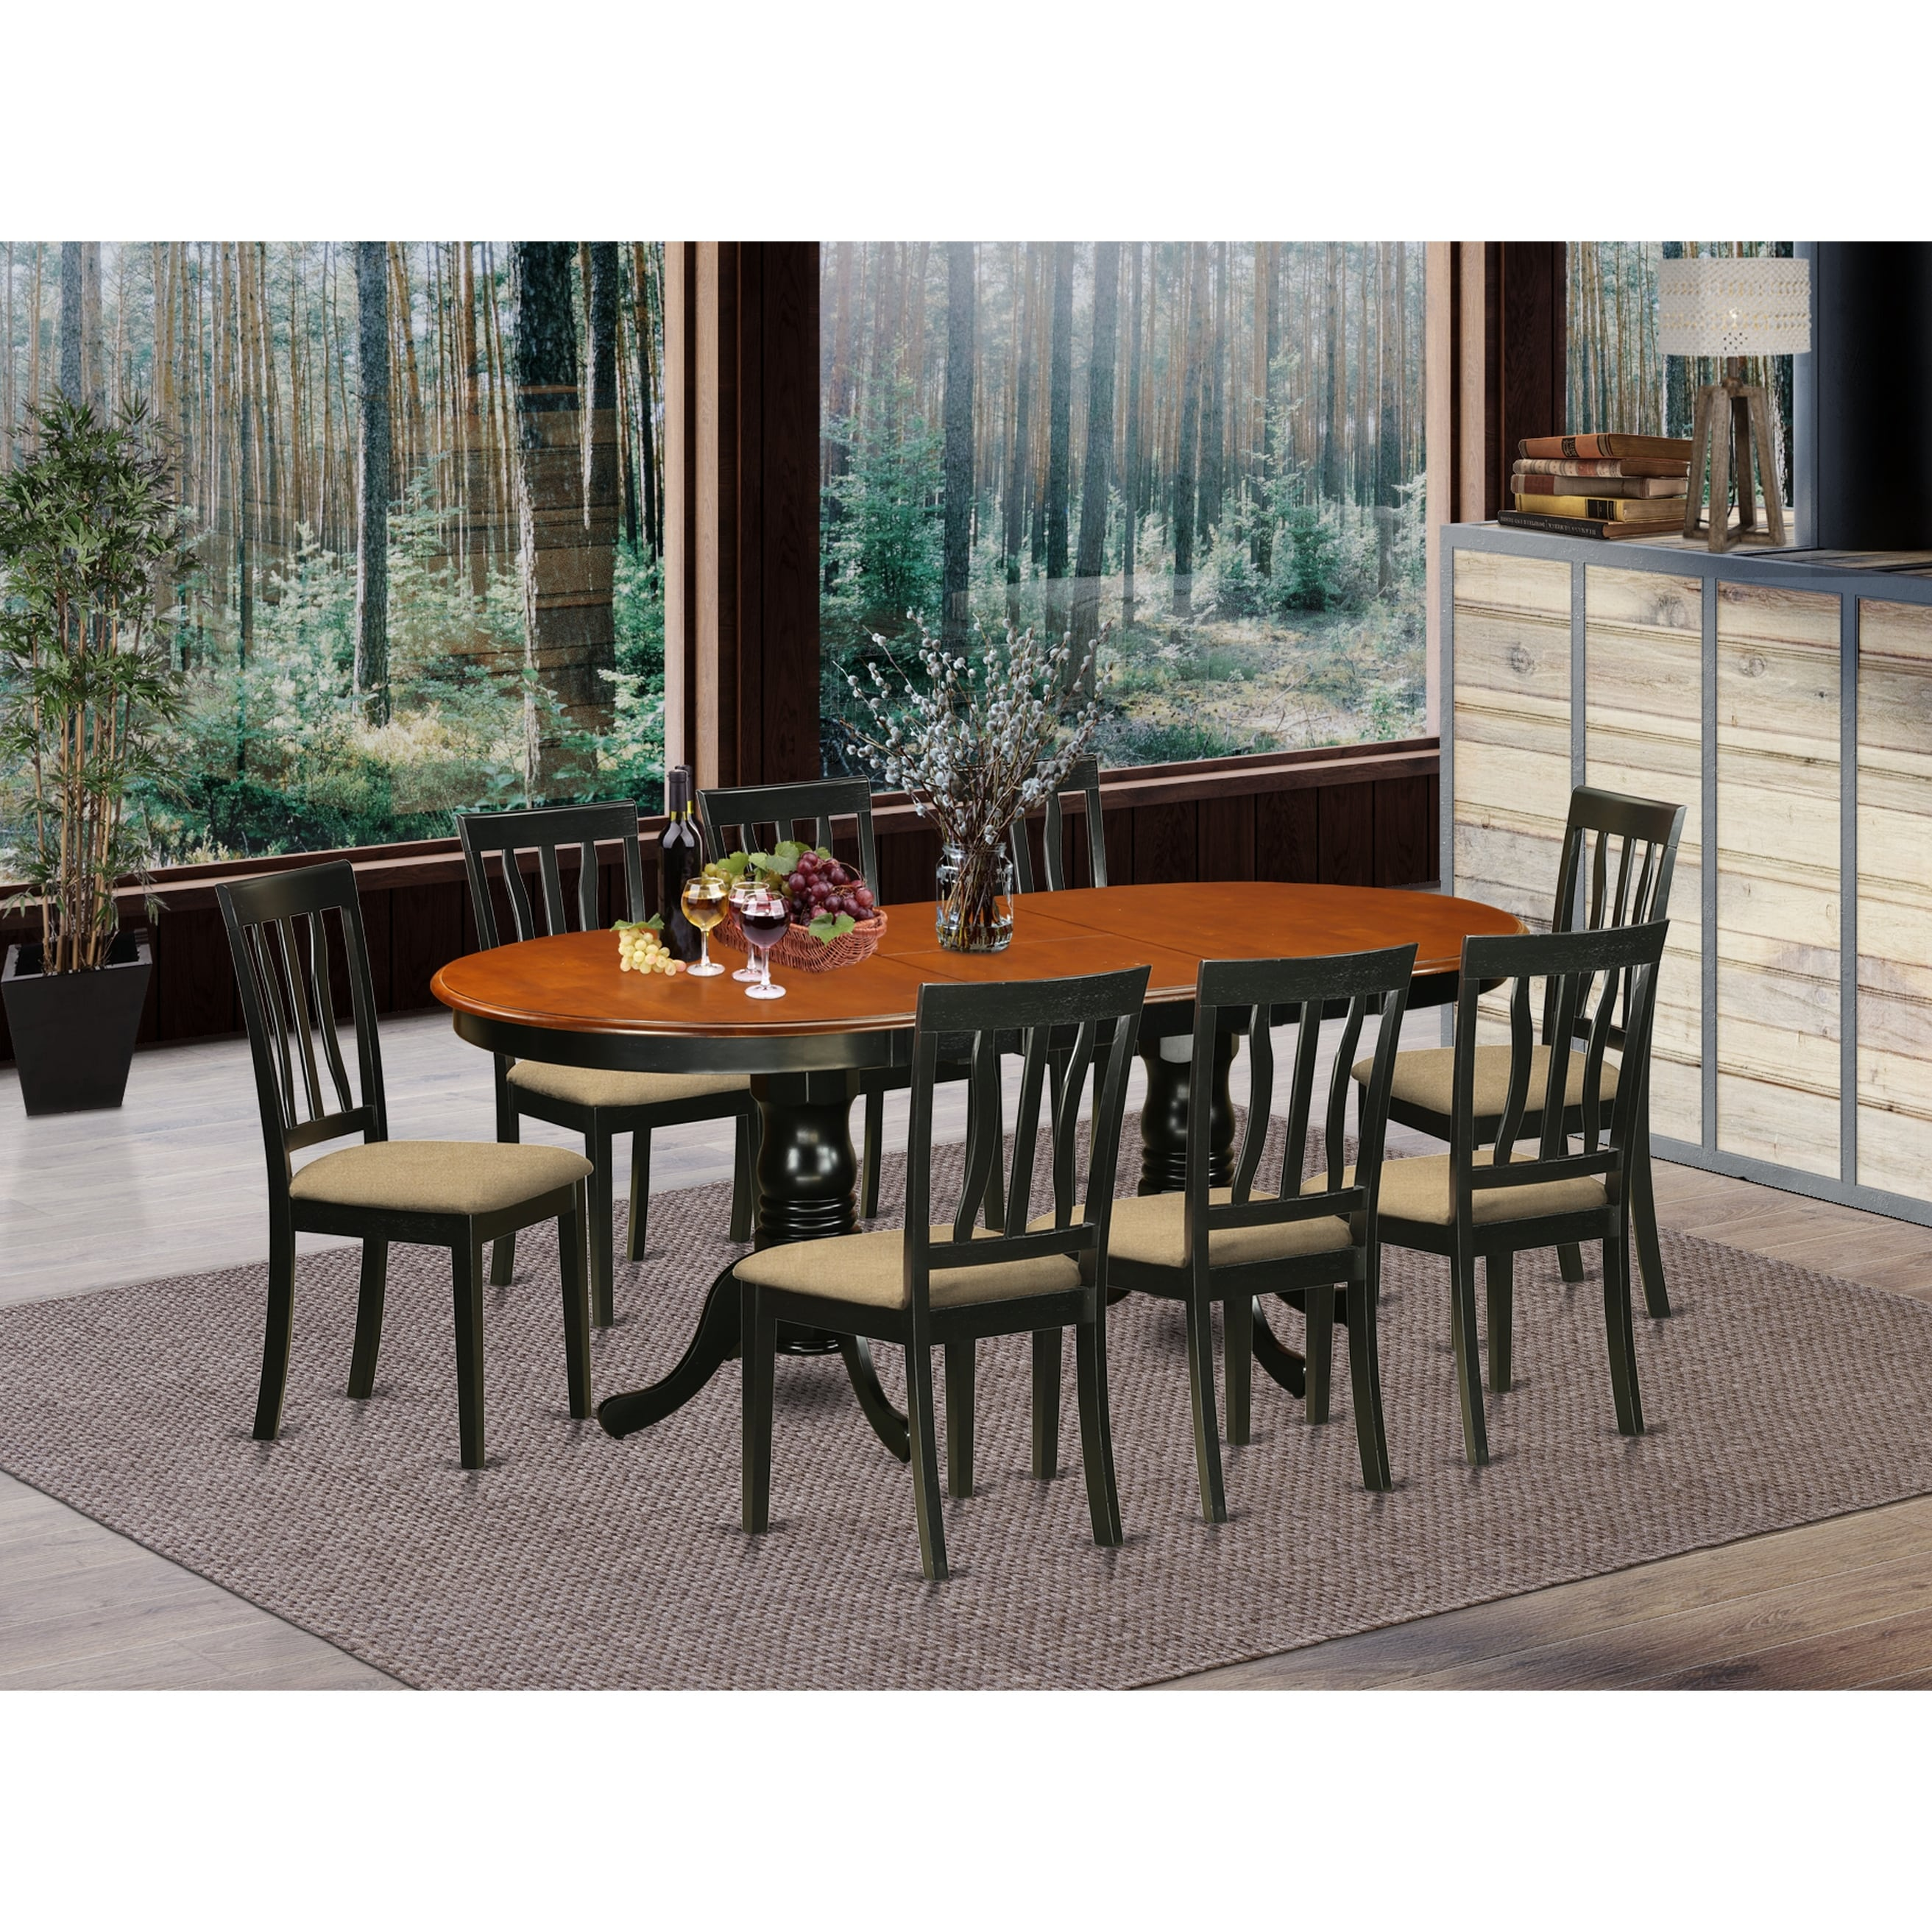 Dining Table With Leaf And 8 Dining Room Chairs In Black And Cherry Finish Overstock 11967726